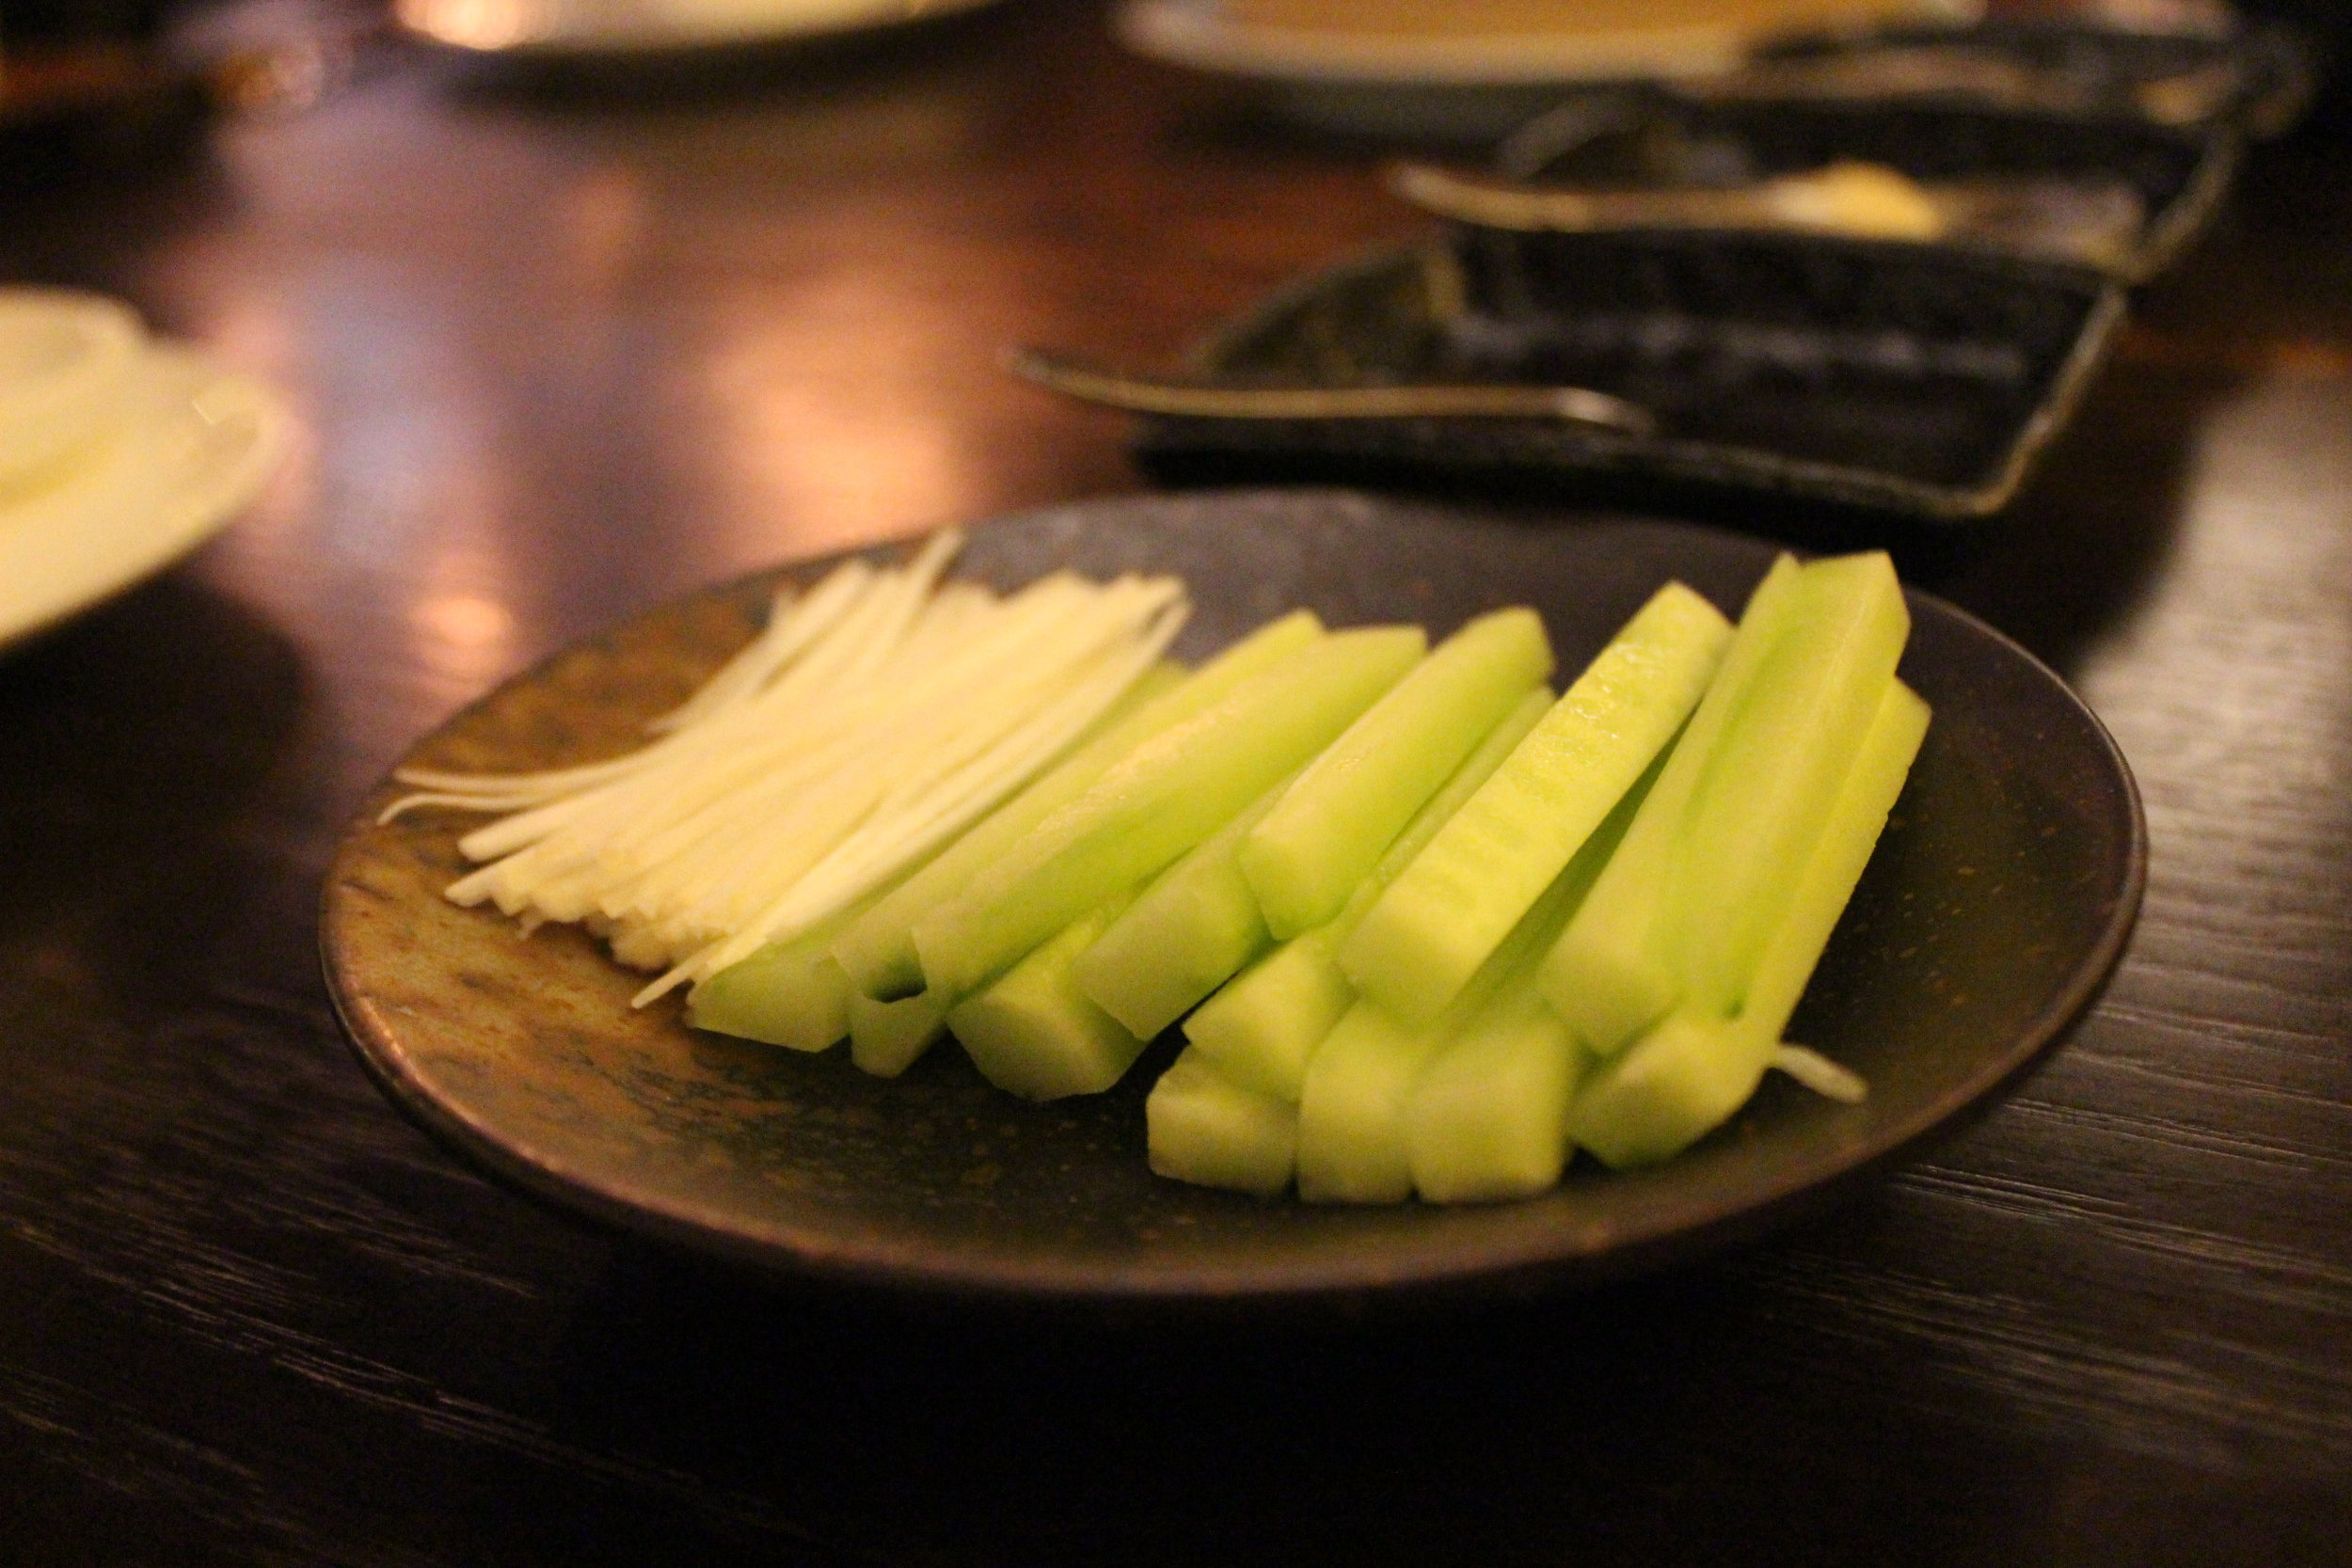 Cucumber and Leek for Apple Wood Roasted 42 Days Peking Duck at Mott 32 in Hong Kong